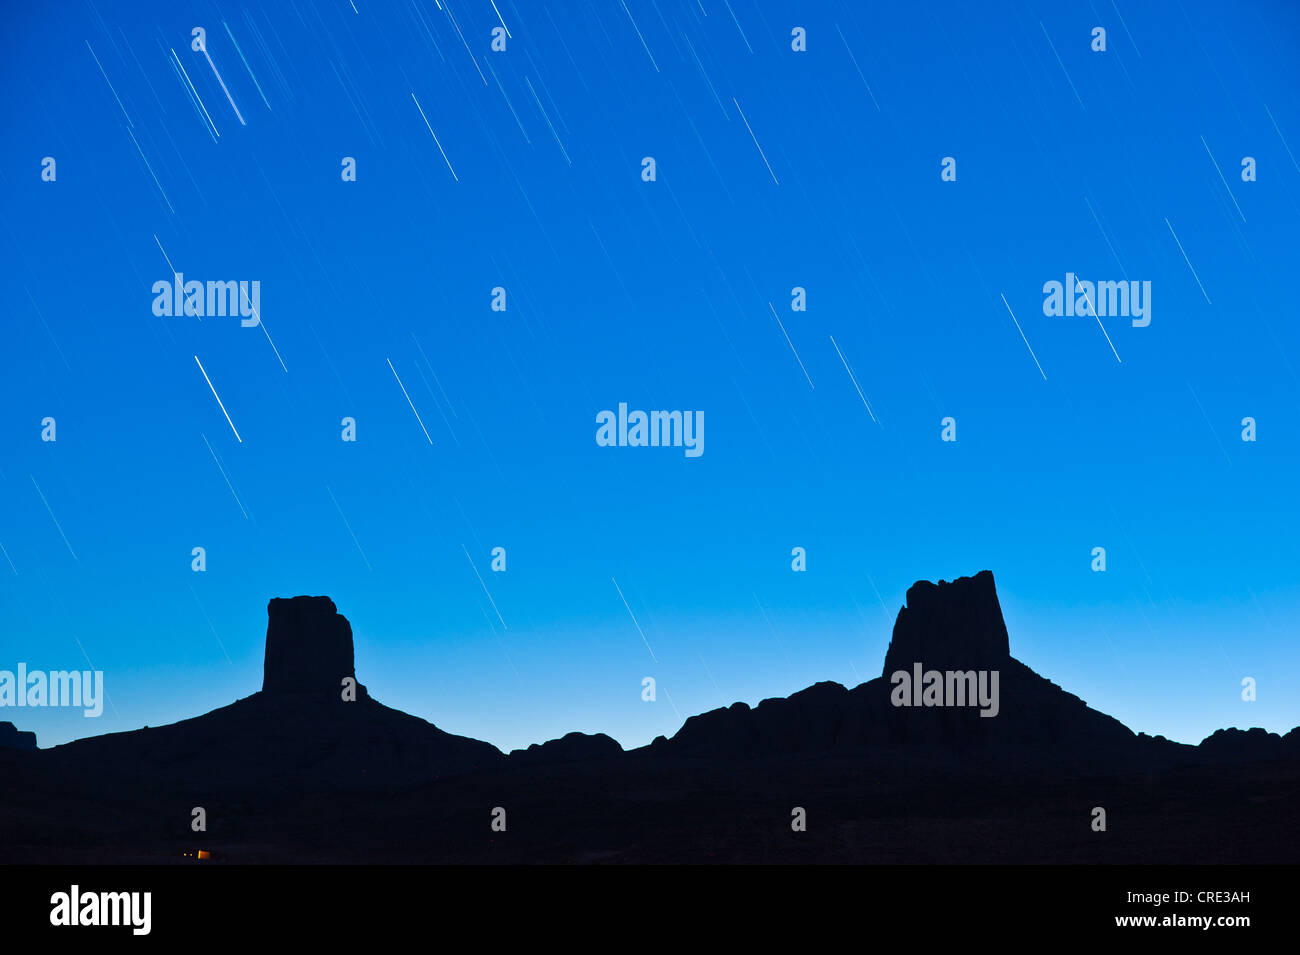 Star-spattered sky over imposing rocks, called Madame and Monsieur, Bab'n Ali, Djebel Sarhro mountains, southern - Stock Image